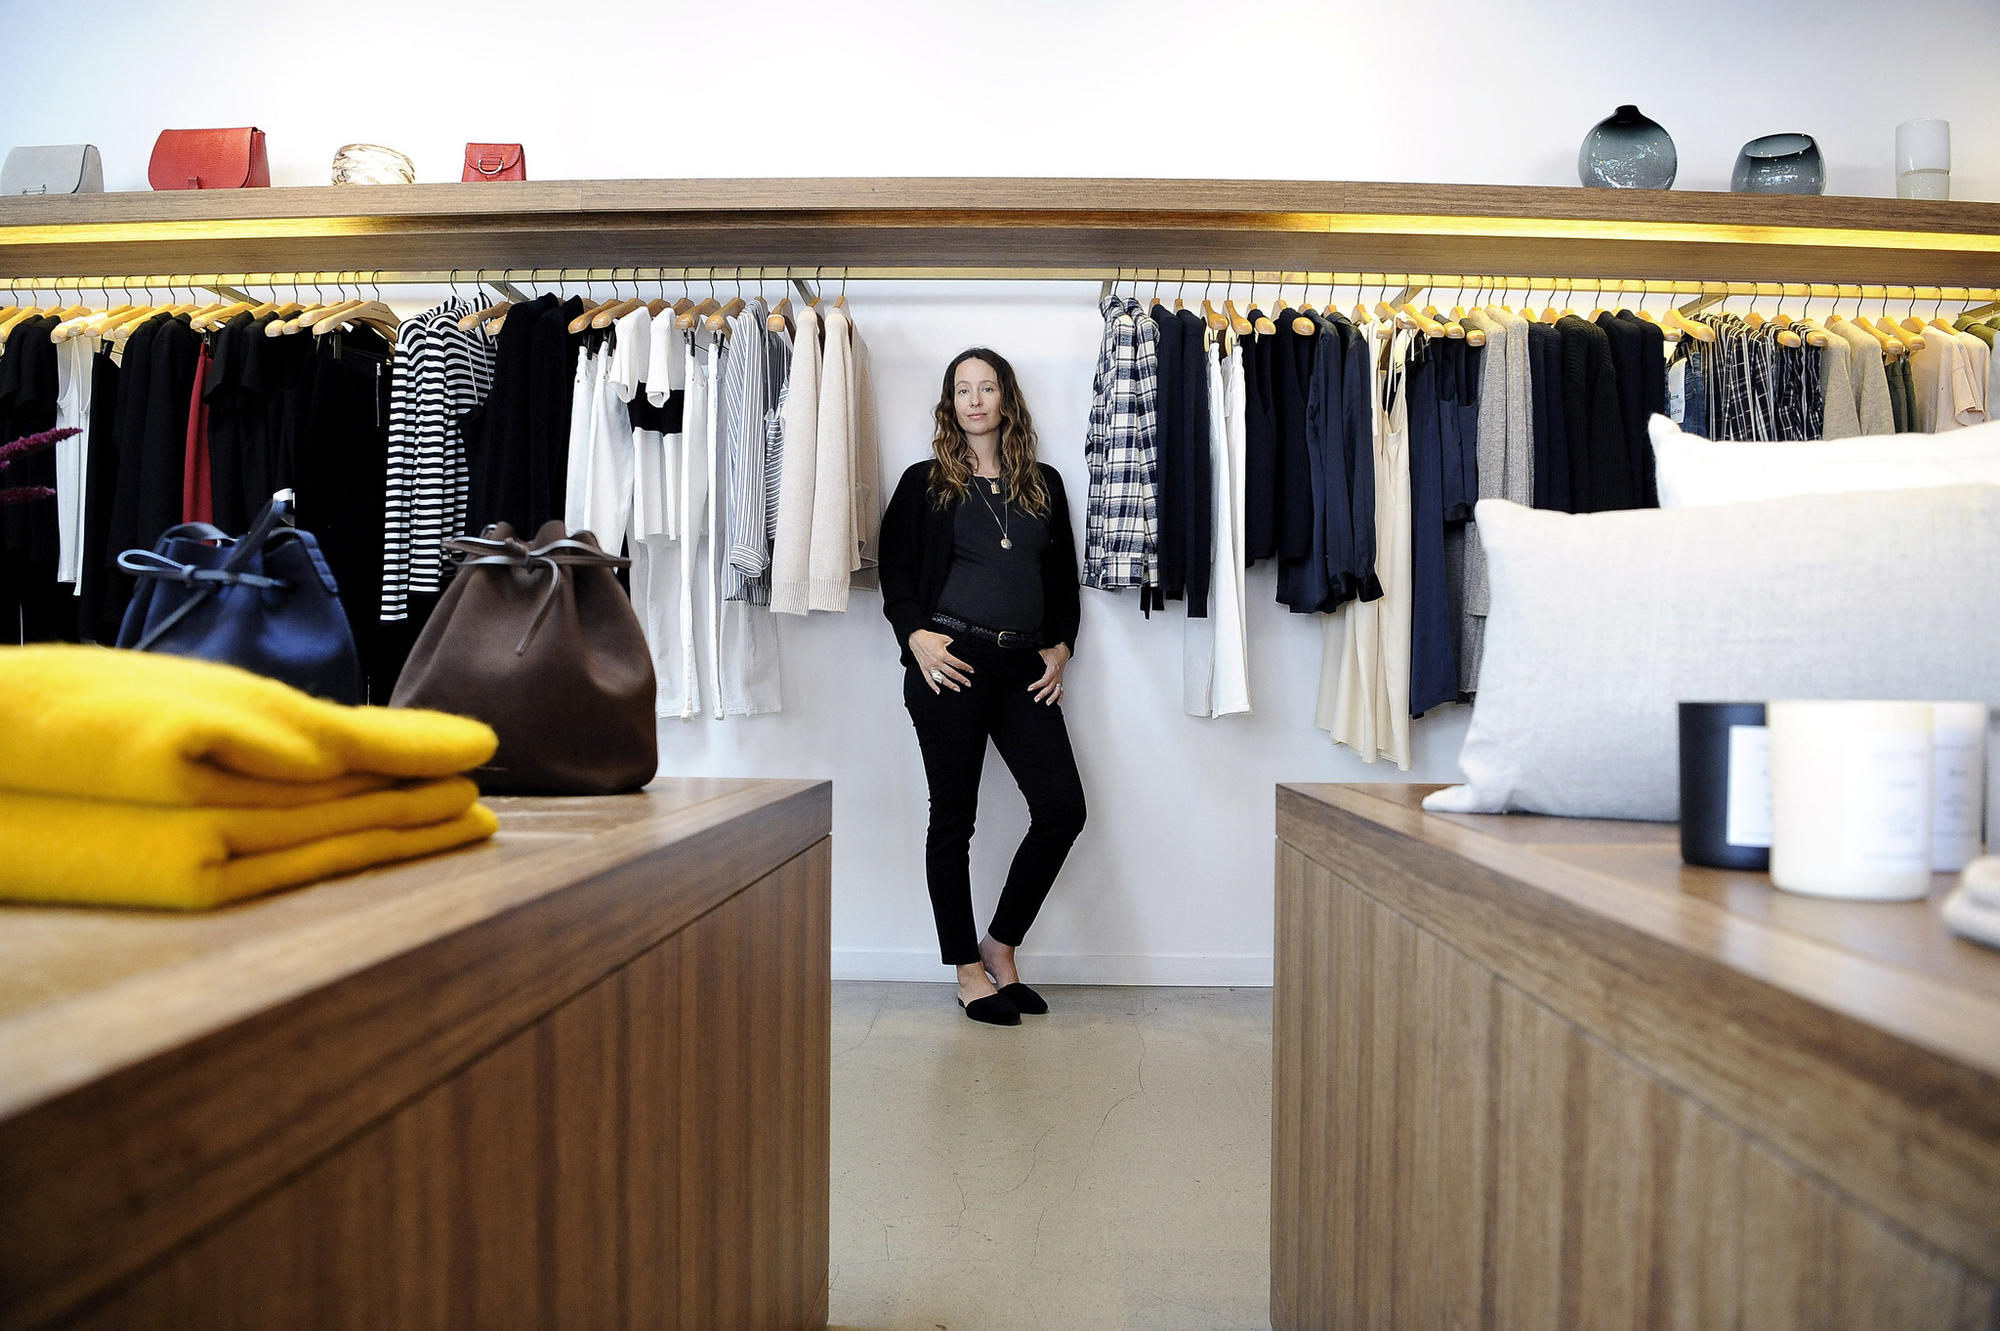 Designer Jenni Kayne at her Brentwood store. Kayne has built a women's fashion and lifestyle brand around her own lifestyle and what inspires her about California. The majority of her goods are made in Los Angeles.